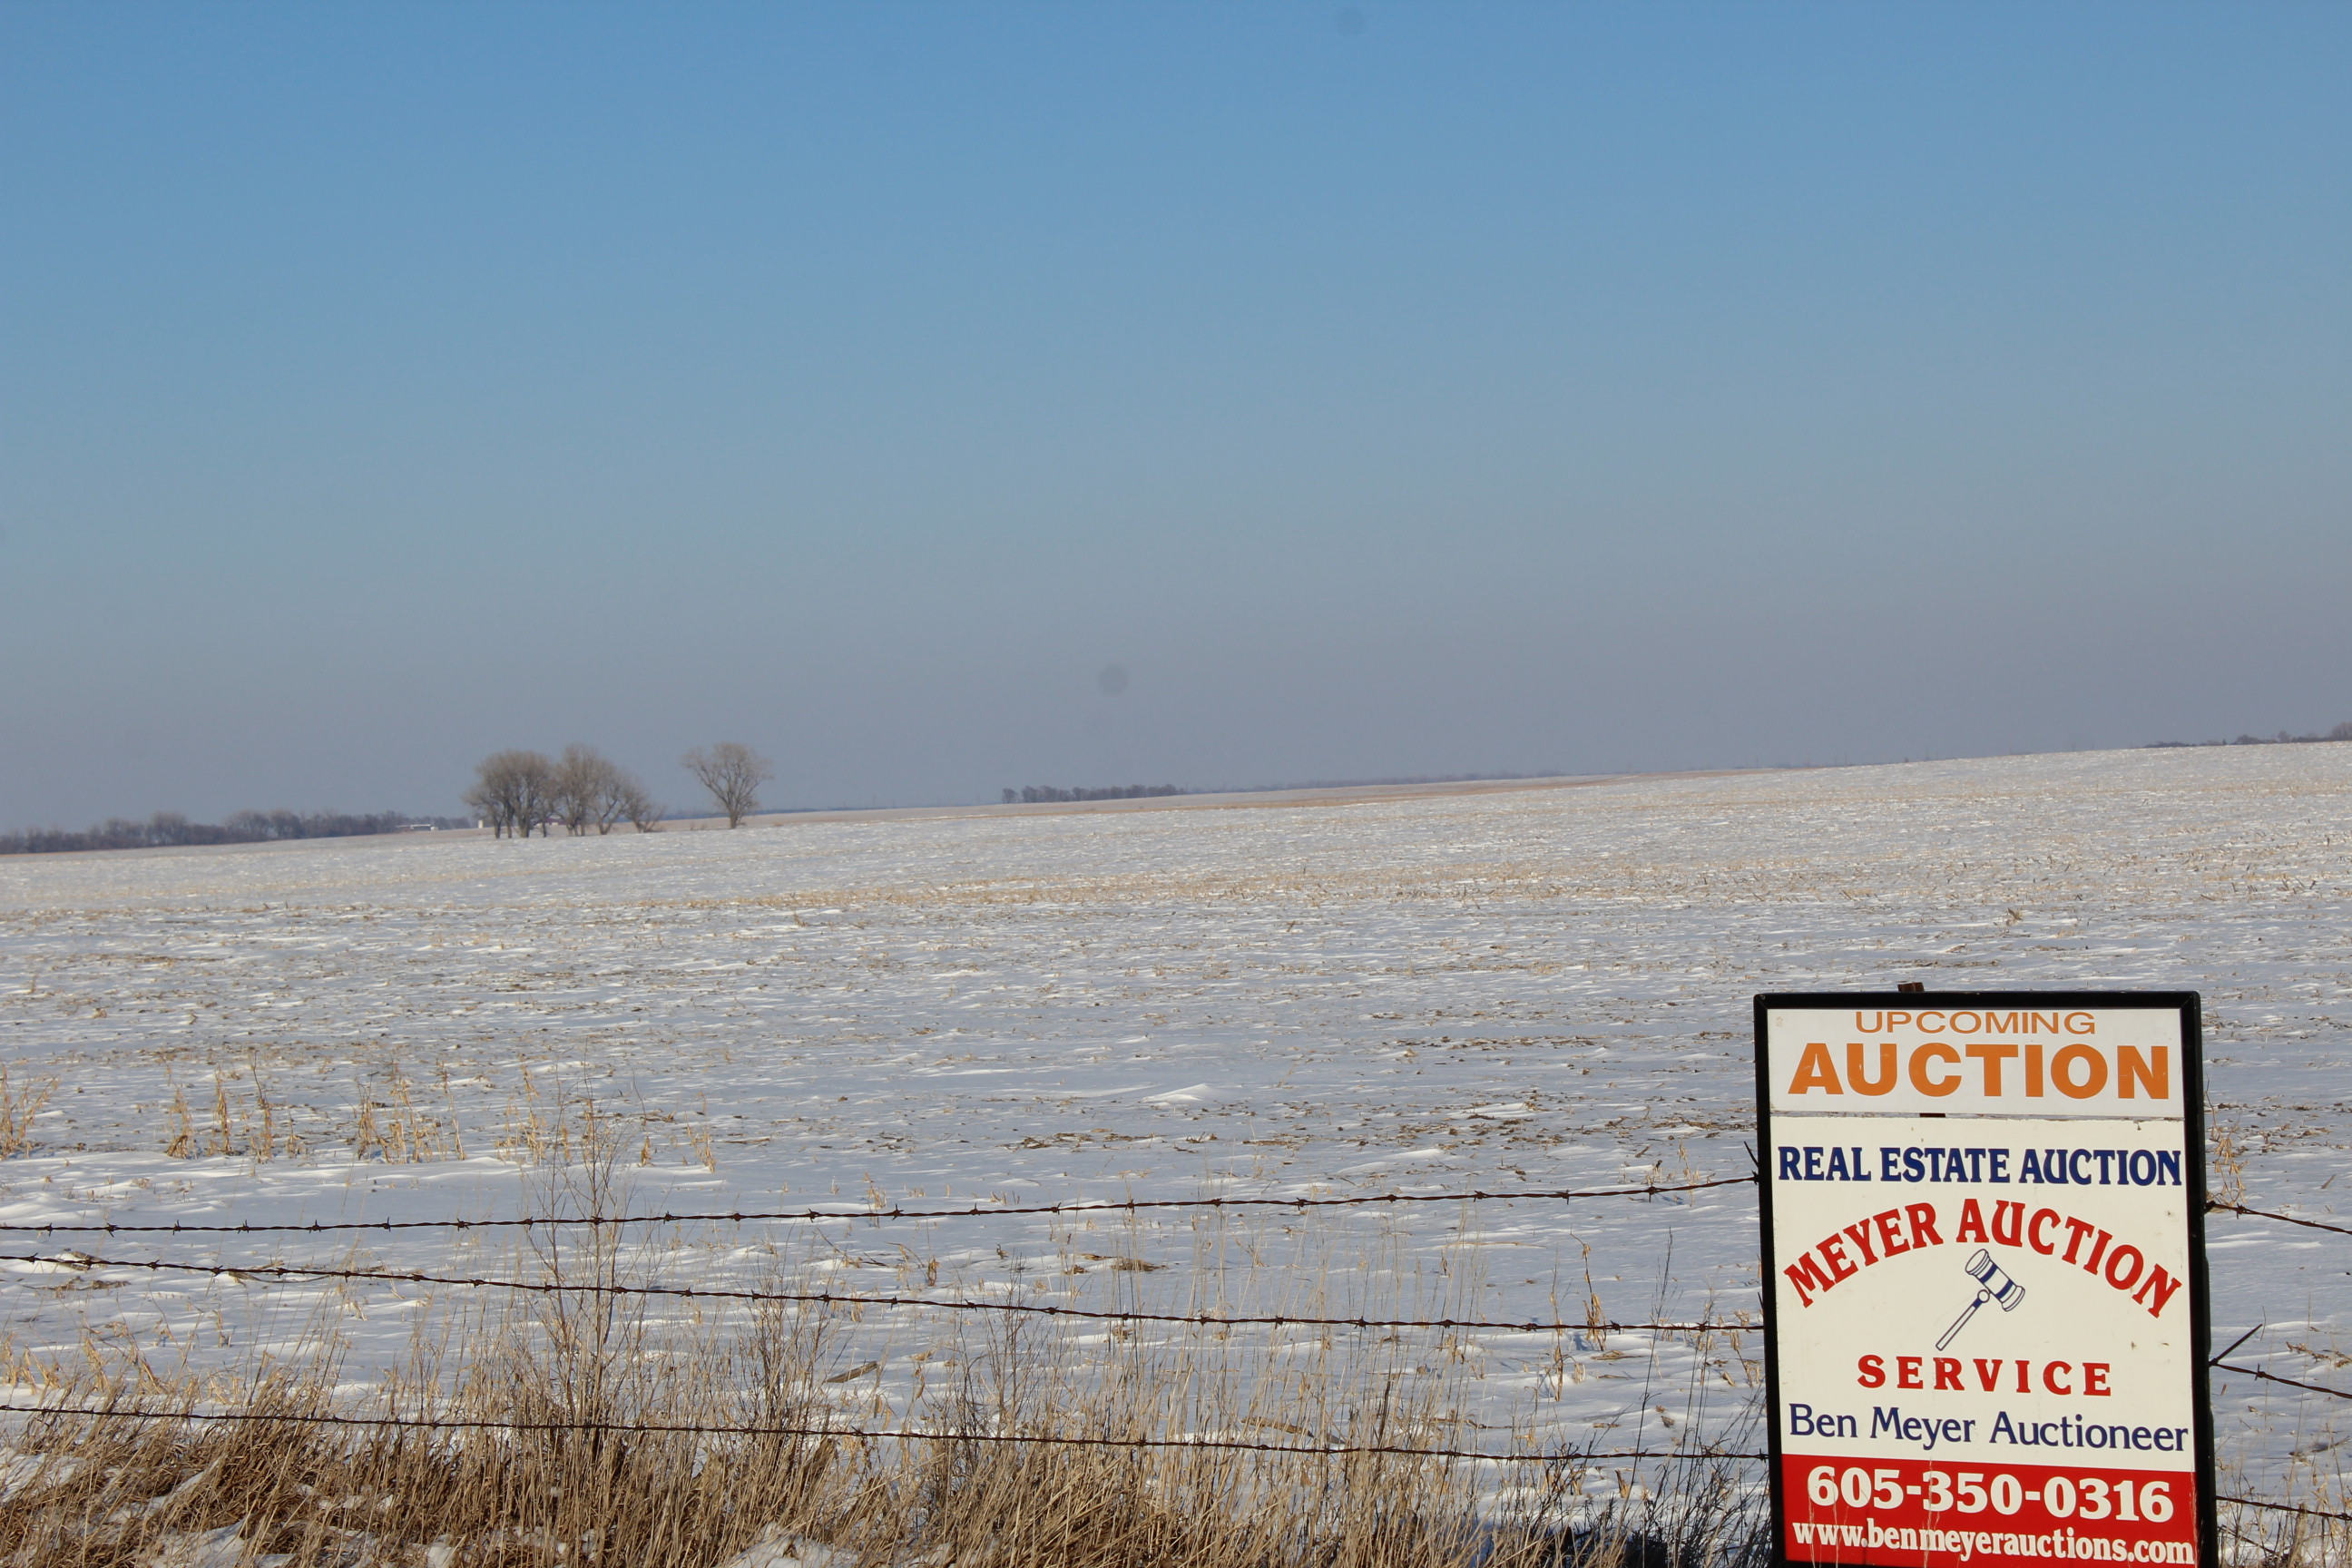 3/16 Jerauld County Land Auction 698 acres +/-